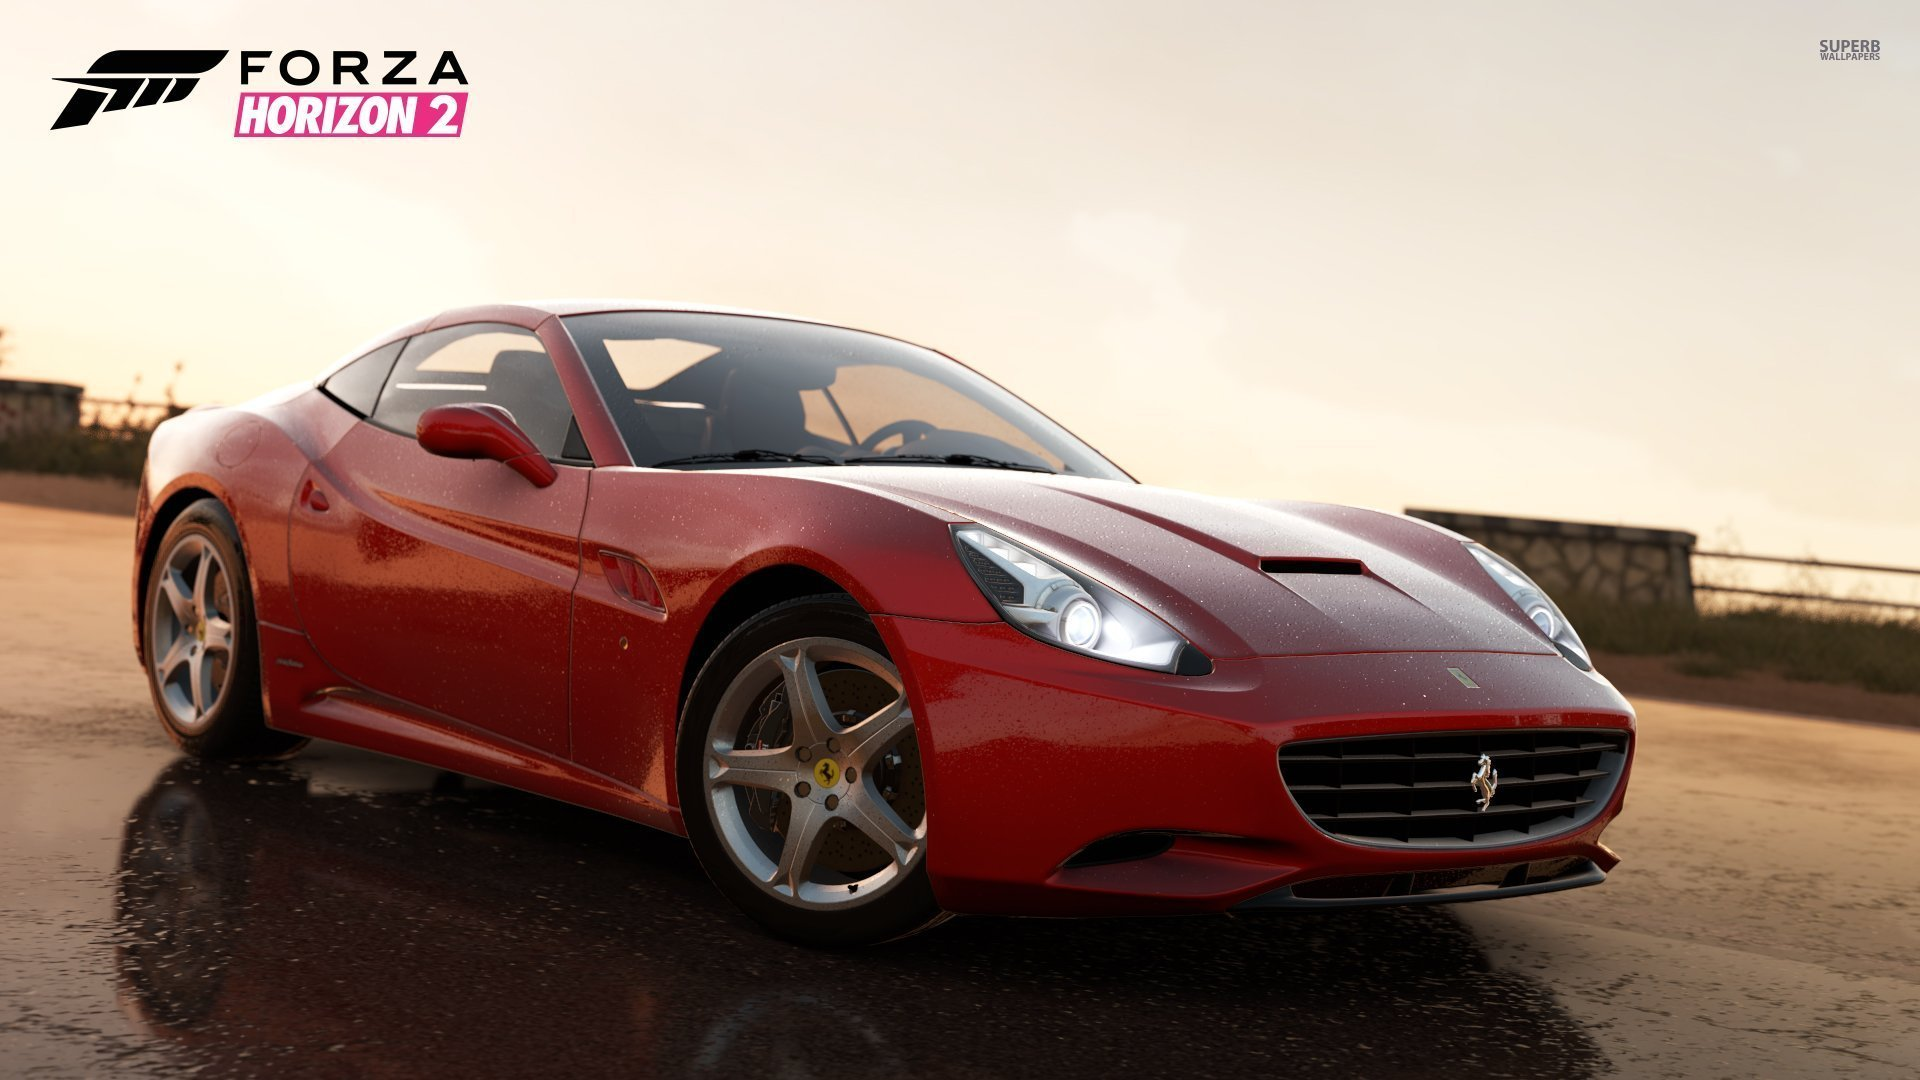 ferrari-california-forza-horizon-2